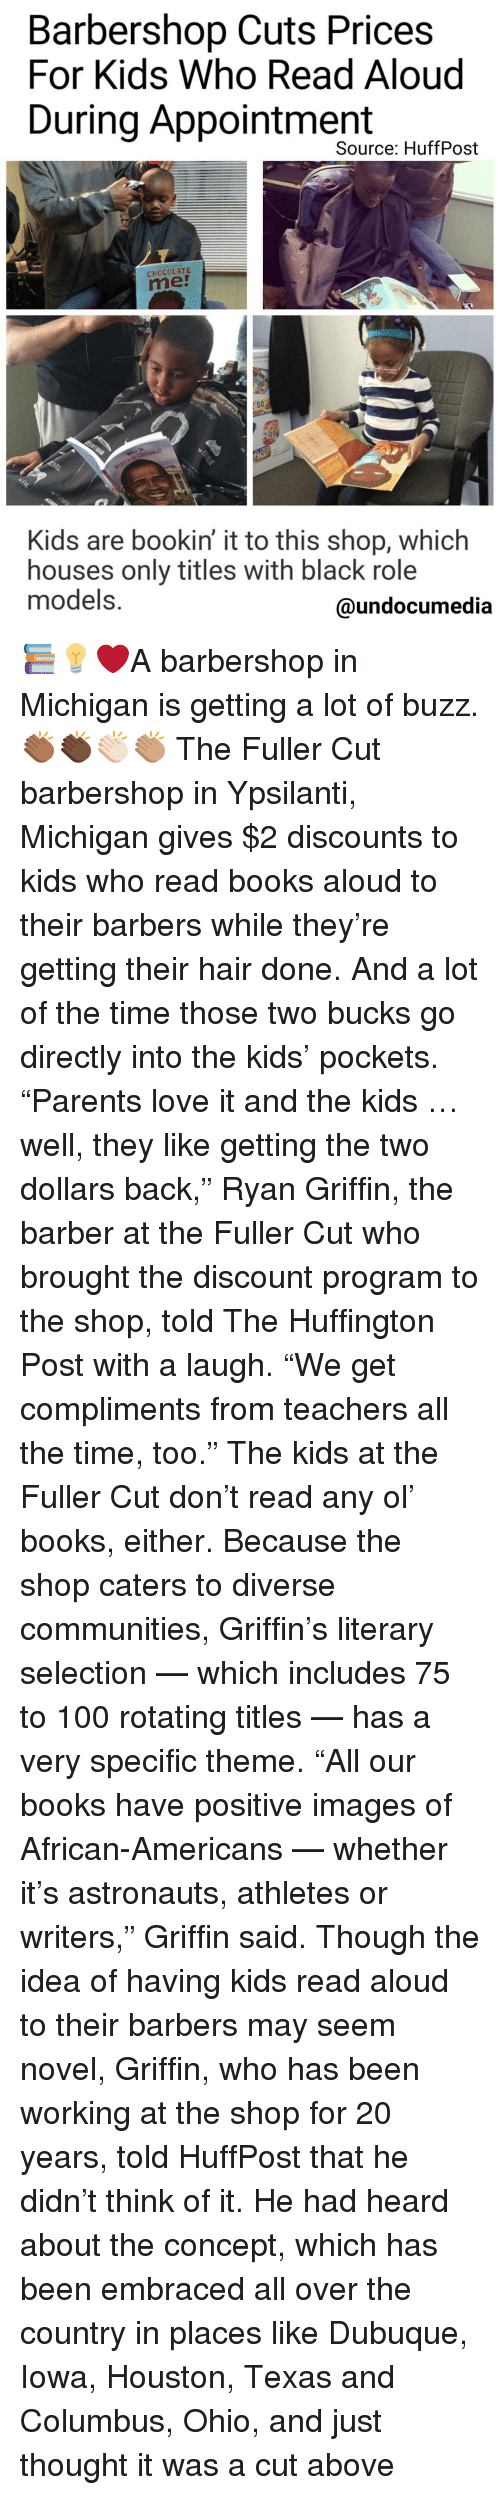 "Memes, Barbershops, and 🤖: Barbershop Cuts Prices  For Kids Who Read Aloud  During Appointment  Source: HuffPost  CHOCOLATE  Kids are bookin it to this shop, which  houses only titles With black role  models.  @undocumedia 📚💡❤A barbershop in Michigan is getting a lot of buzz.👏🏾👏🏿👏🏻👏🏽 The Fuller Cut barbershop in Ypsilanti, Michigan gives $2 discounts to kids who read books aloud to their barbers while they're getting their hair done. And a lot of the time those two bucks go directly into the kids' pockets. ""Parents love it and the kids … well, they like getting the two dollars back,"" Ryan Griffin, the barber at the Fuller Cut who brought the discount program to the shop, told The Huffington Post with a laugh. ""We get compliments from teachers all the time, too."" The kids at the Fuller Cut don't read any ol' books, either. Because the shop caters to diverse communities, Griffin's literary selection — which includes 75 to 100 rotating titles — has a very specific theme. ""All our books have positive images of African-Americans — whether it's astronauts, athletes or writers,"" Griffin said. Though the idea of having kids read aloud to their barbers may seem novel, Griffin, who has been working at the shop for 20 years, told HuffPost that he didn't think of it. He had heard about the concept, which has been embraced all over the country in places like Dubuque, Iowa, Houston, Texas and Columbus, Ohio, and just thought it was a cut above"